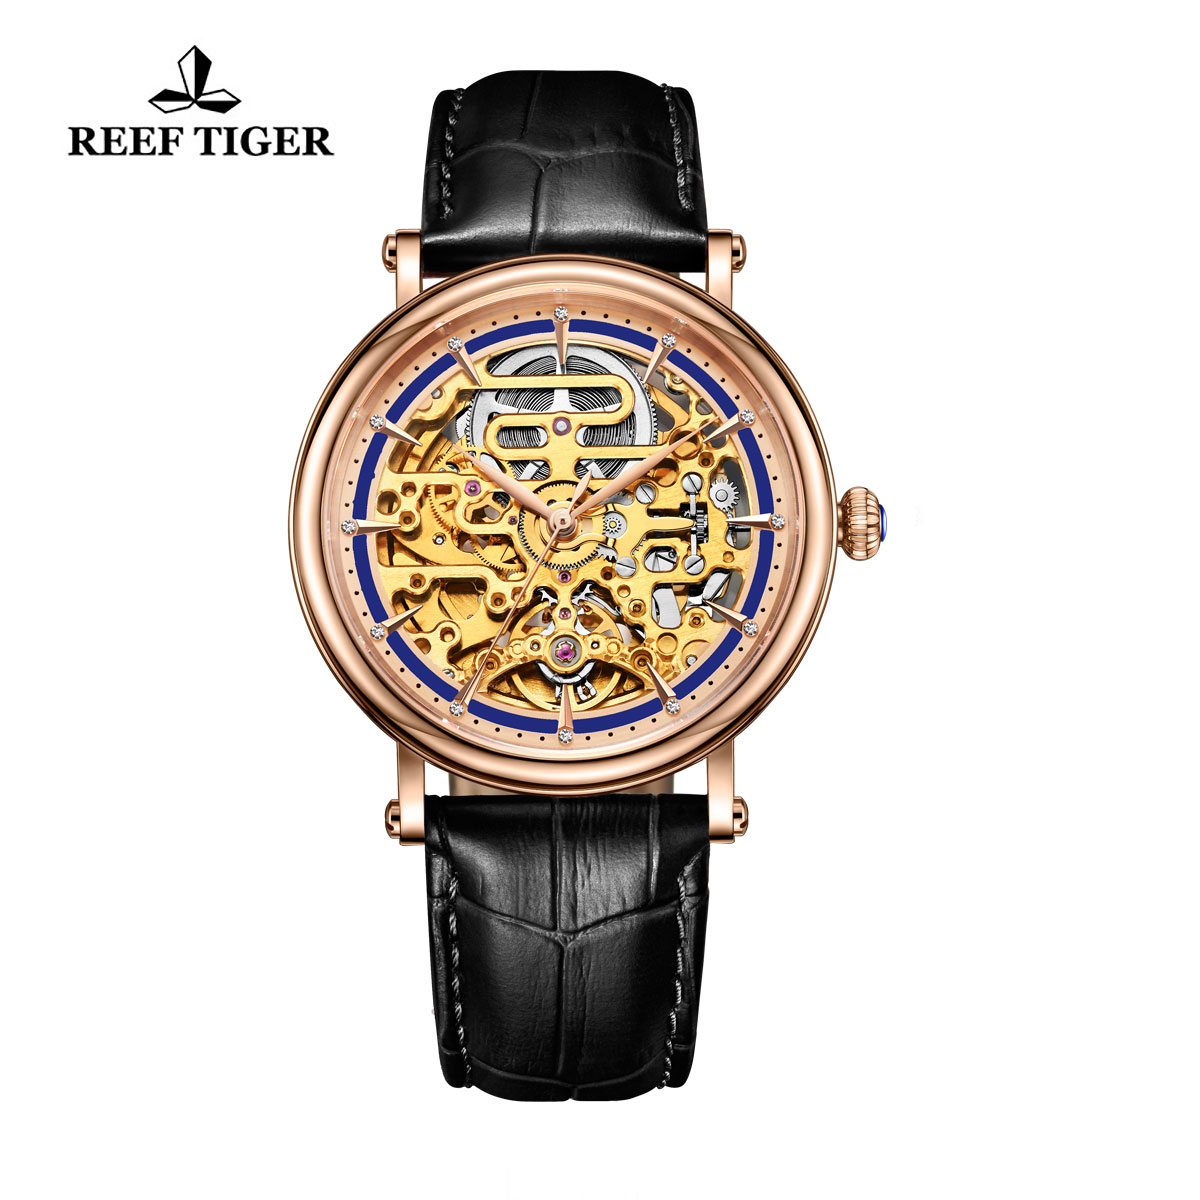 Reef Tiger Casual Watch with Baroque Style Skeleton Dial Rose Gold Case RGA1917-PLB